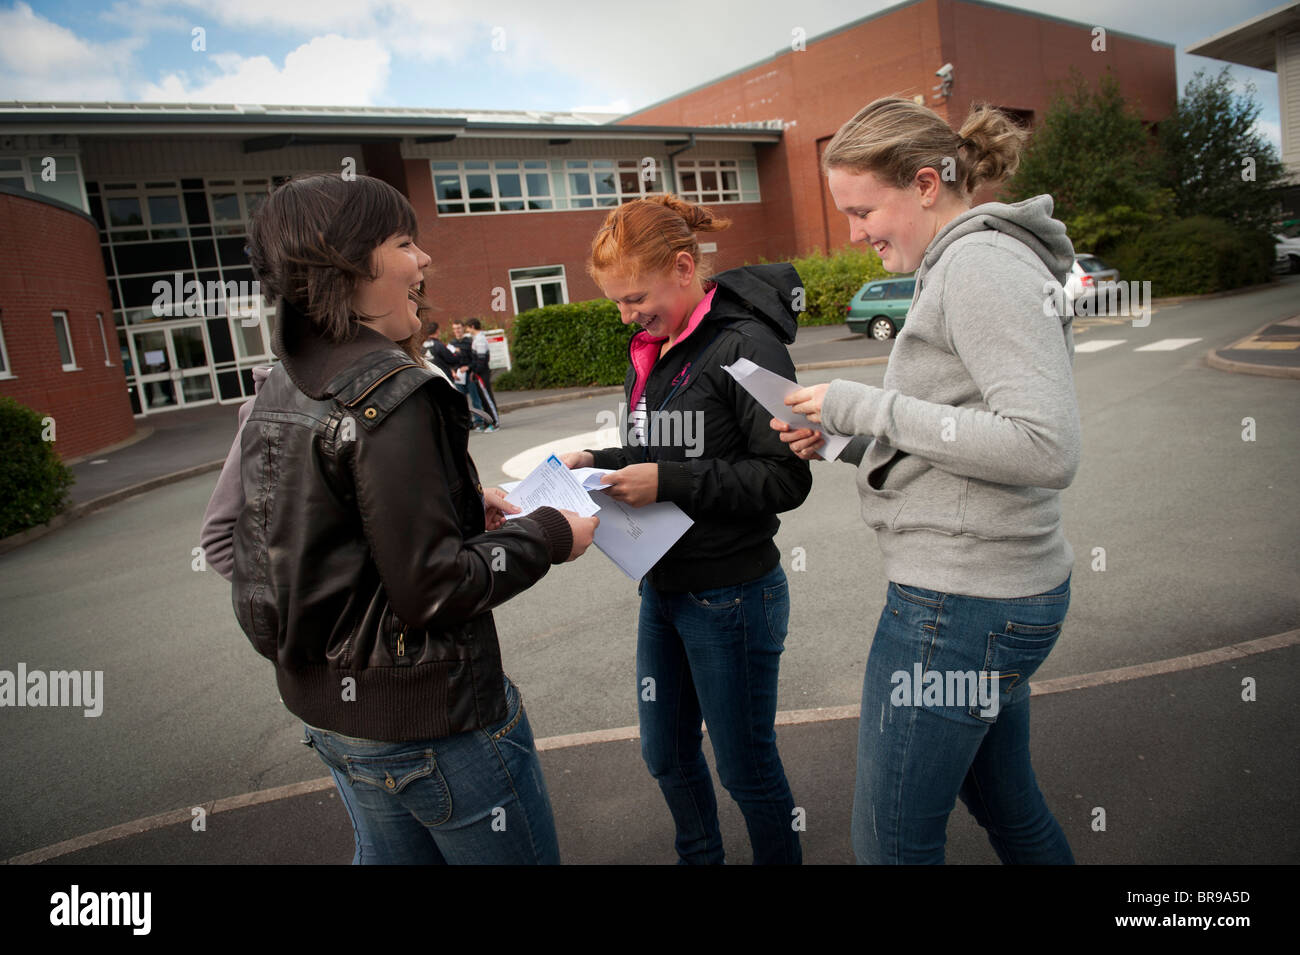 three 16 year old year 8 school children receiving their GCSE exam results, Wales UK - Stock Image